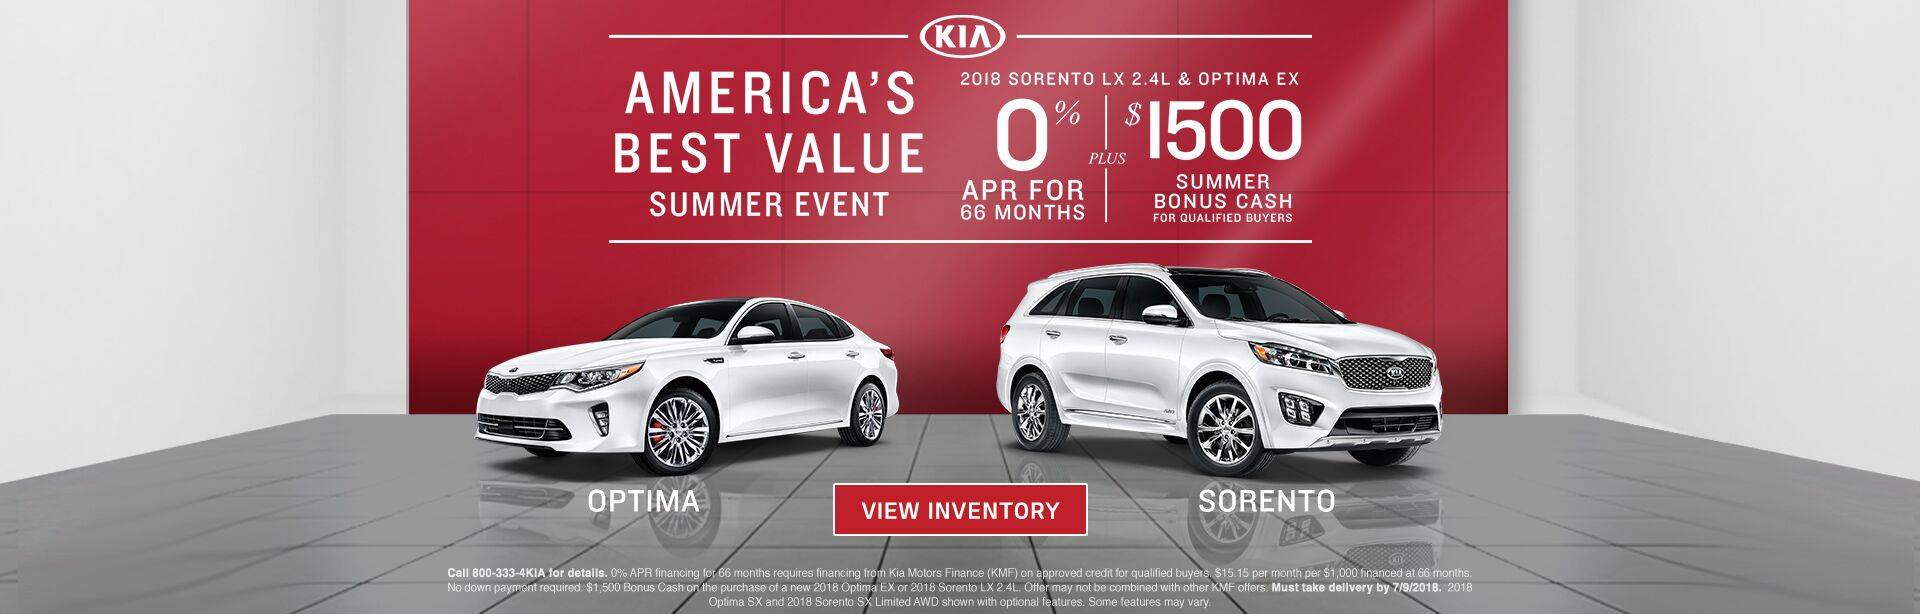 America's Best Value Summer Event at VanDevere Kia